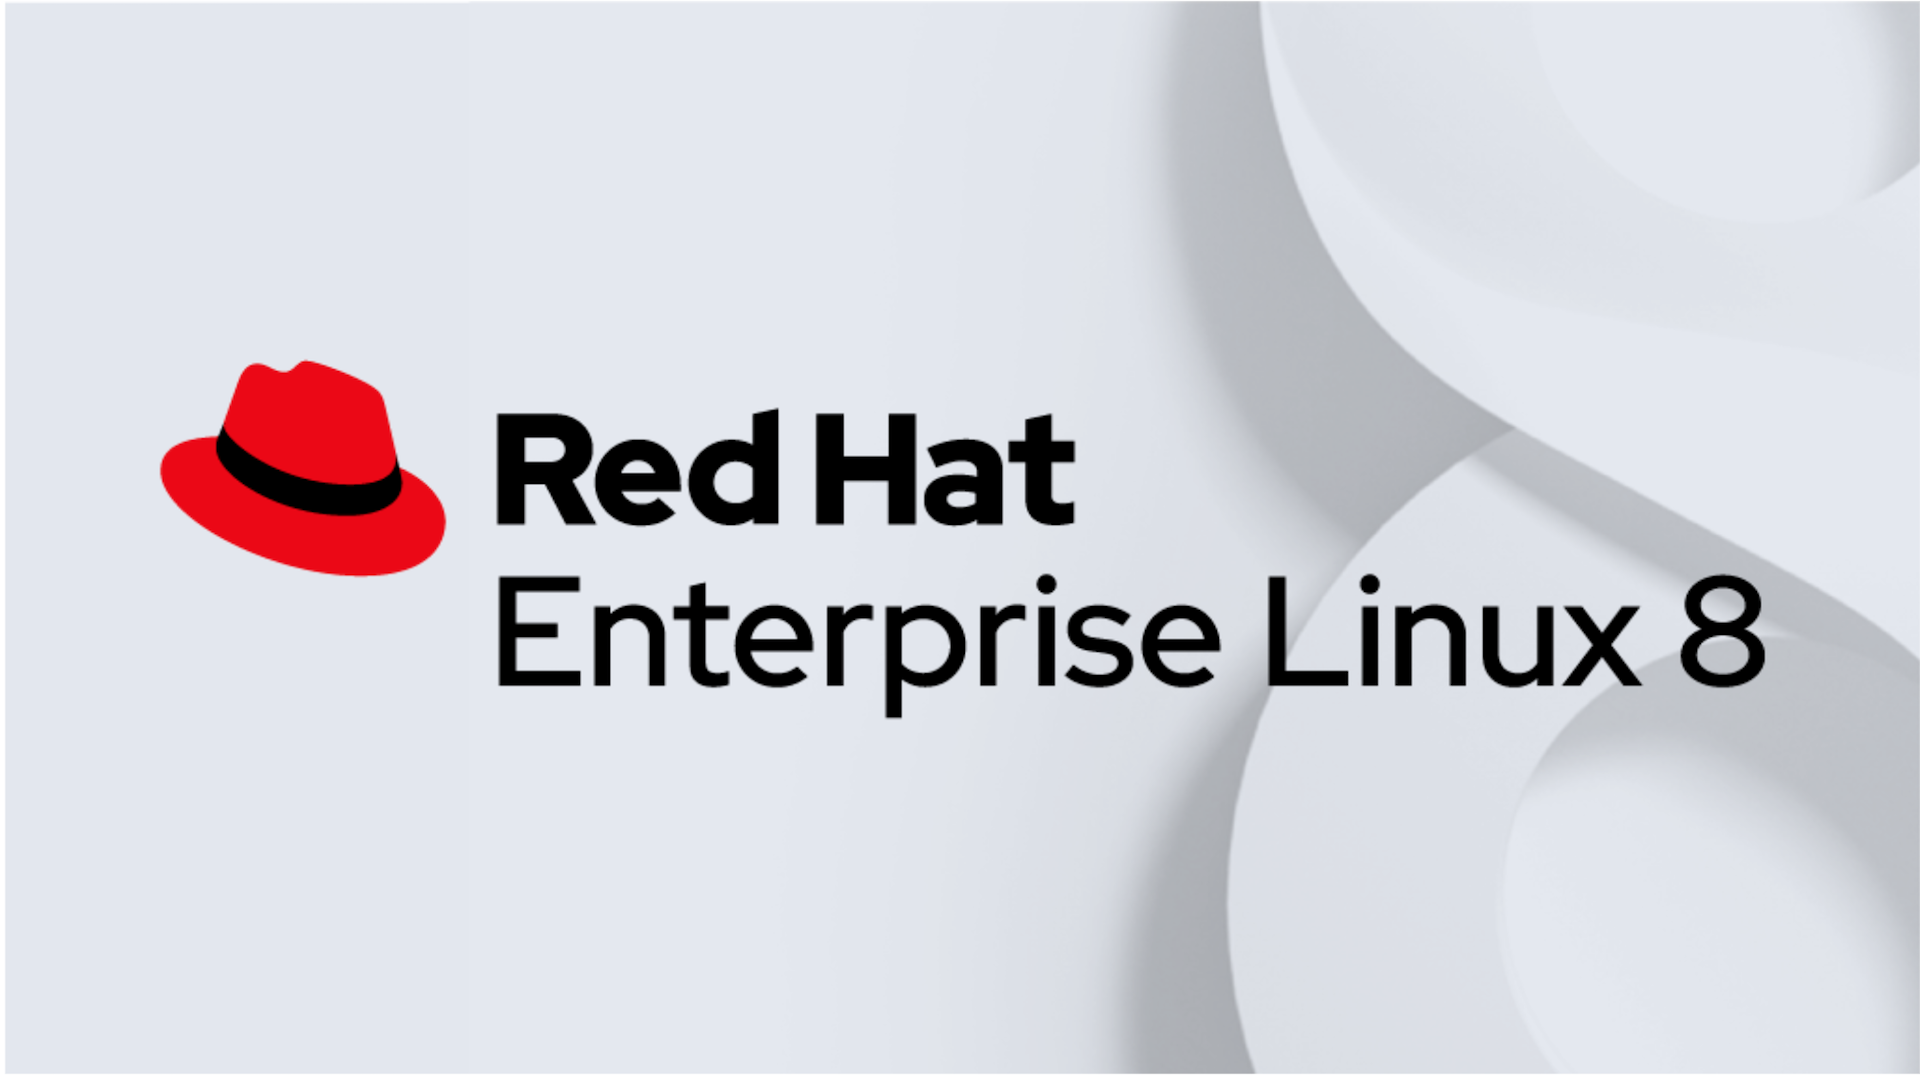 Virtual event: Conquer complexity with Red Hat Enterprise Linux 8